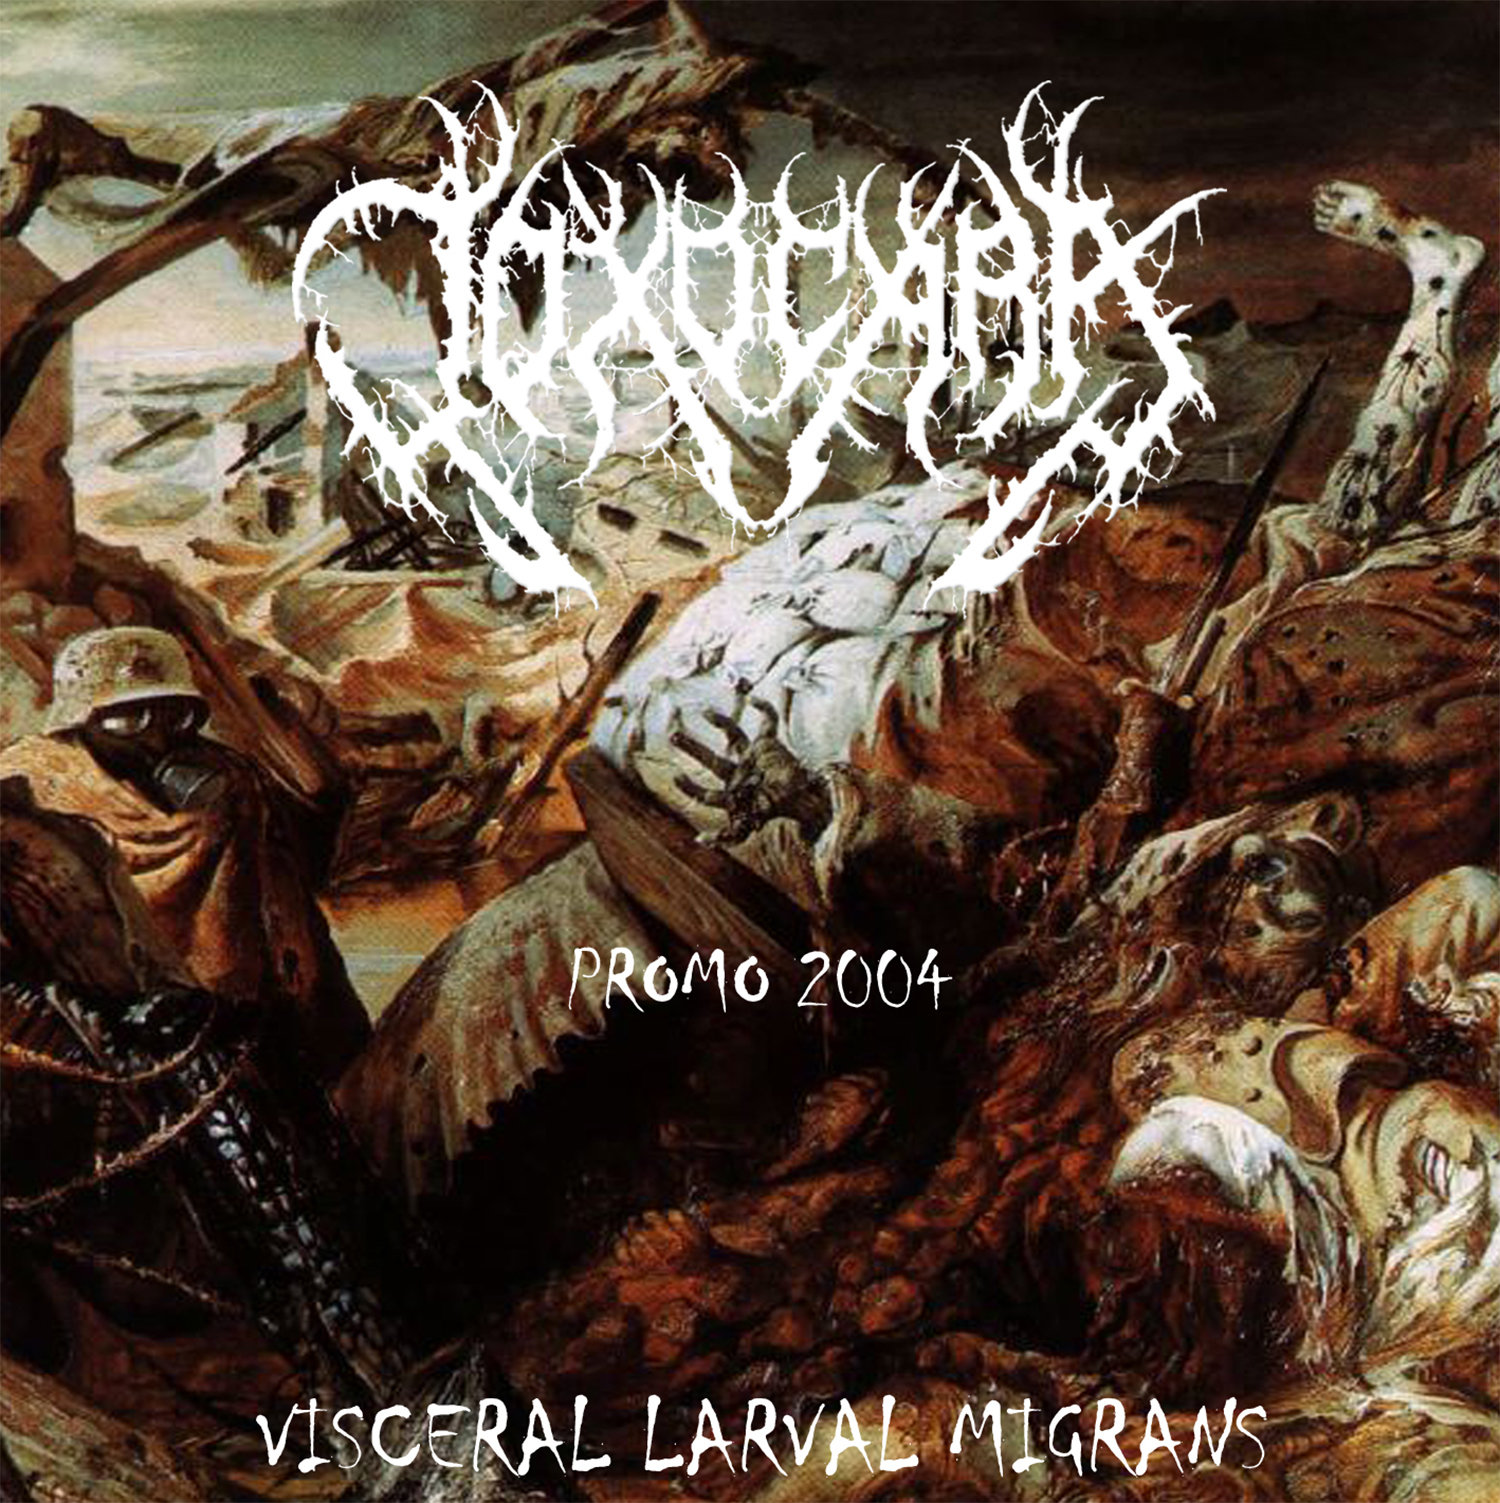 TOXOCARA - Visceral Larval Migrans (PROMO 2004) SOLD OUT 00003